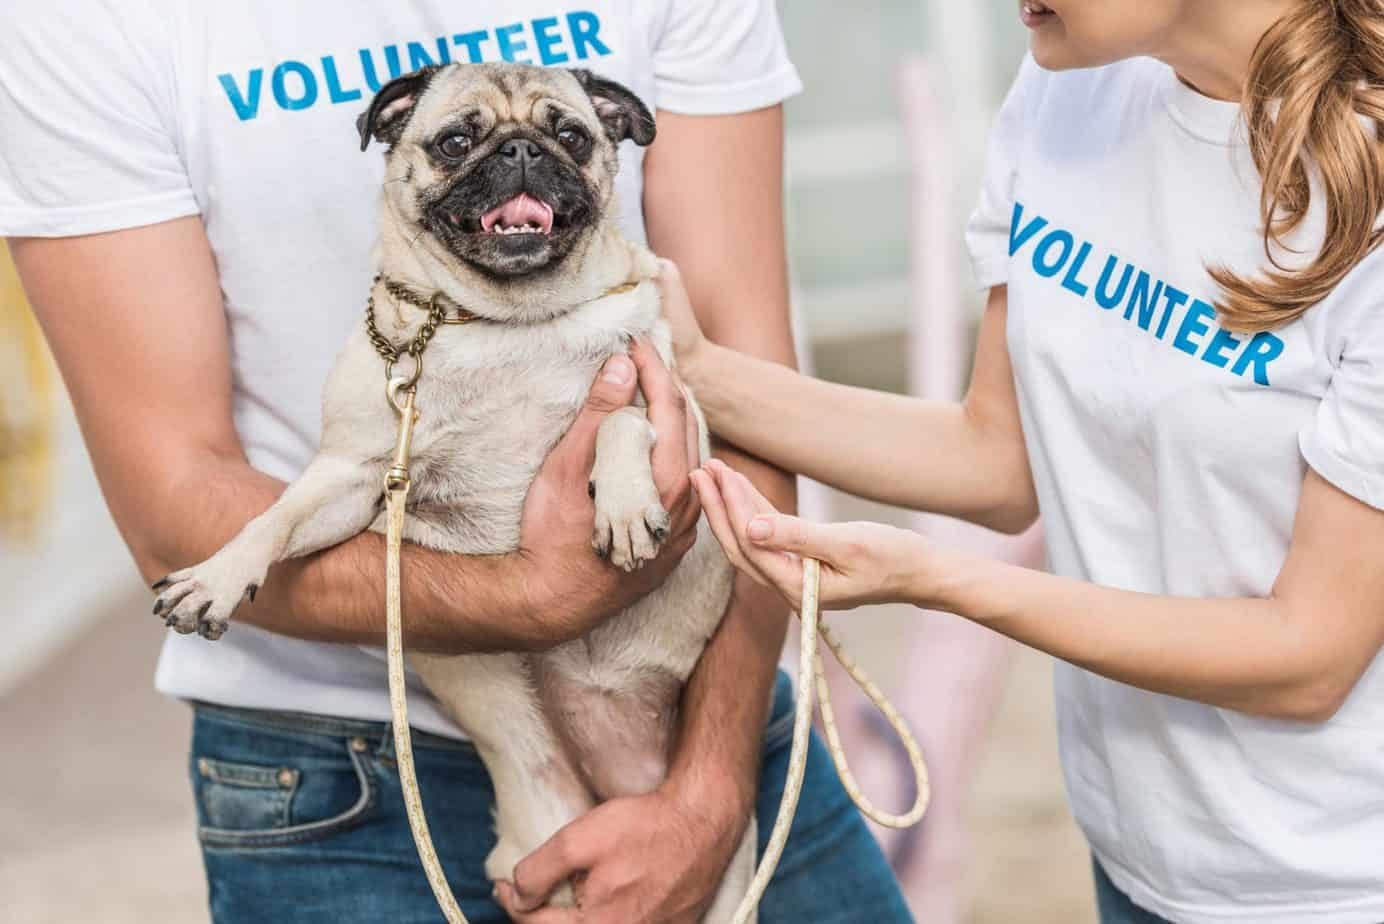 Man and woman play with pug when they volunteer at an animal shelter.